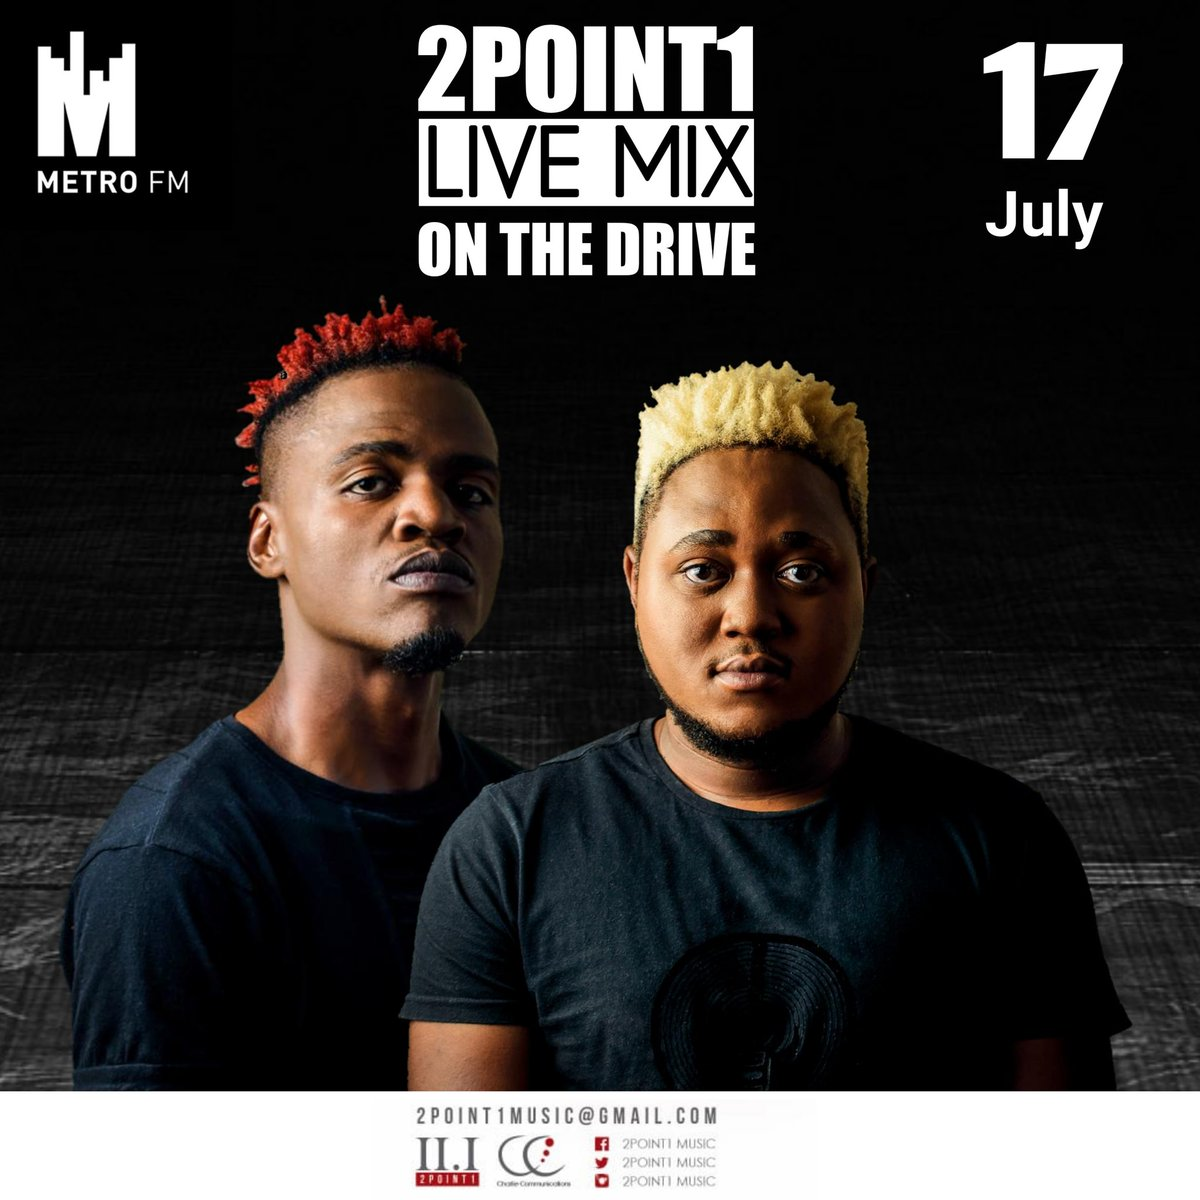 Tell your friends to tell their friends that #2point1 Is on @METROFMSA #OnTheDrive with @moflavadj do tune in for a live Mix   #BathoBana #Available on digital Store @CharlieComms_ ❤️🇿🇦